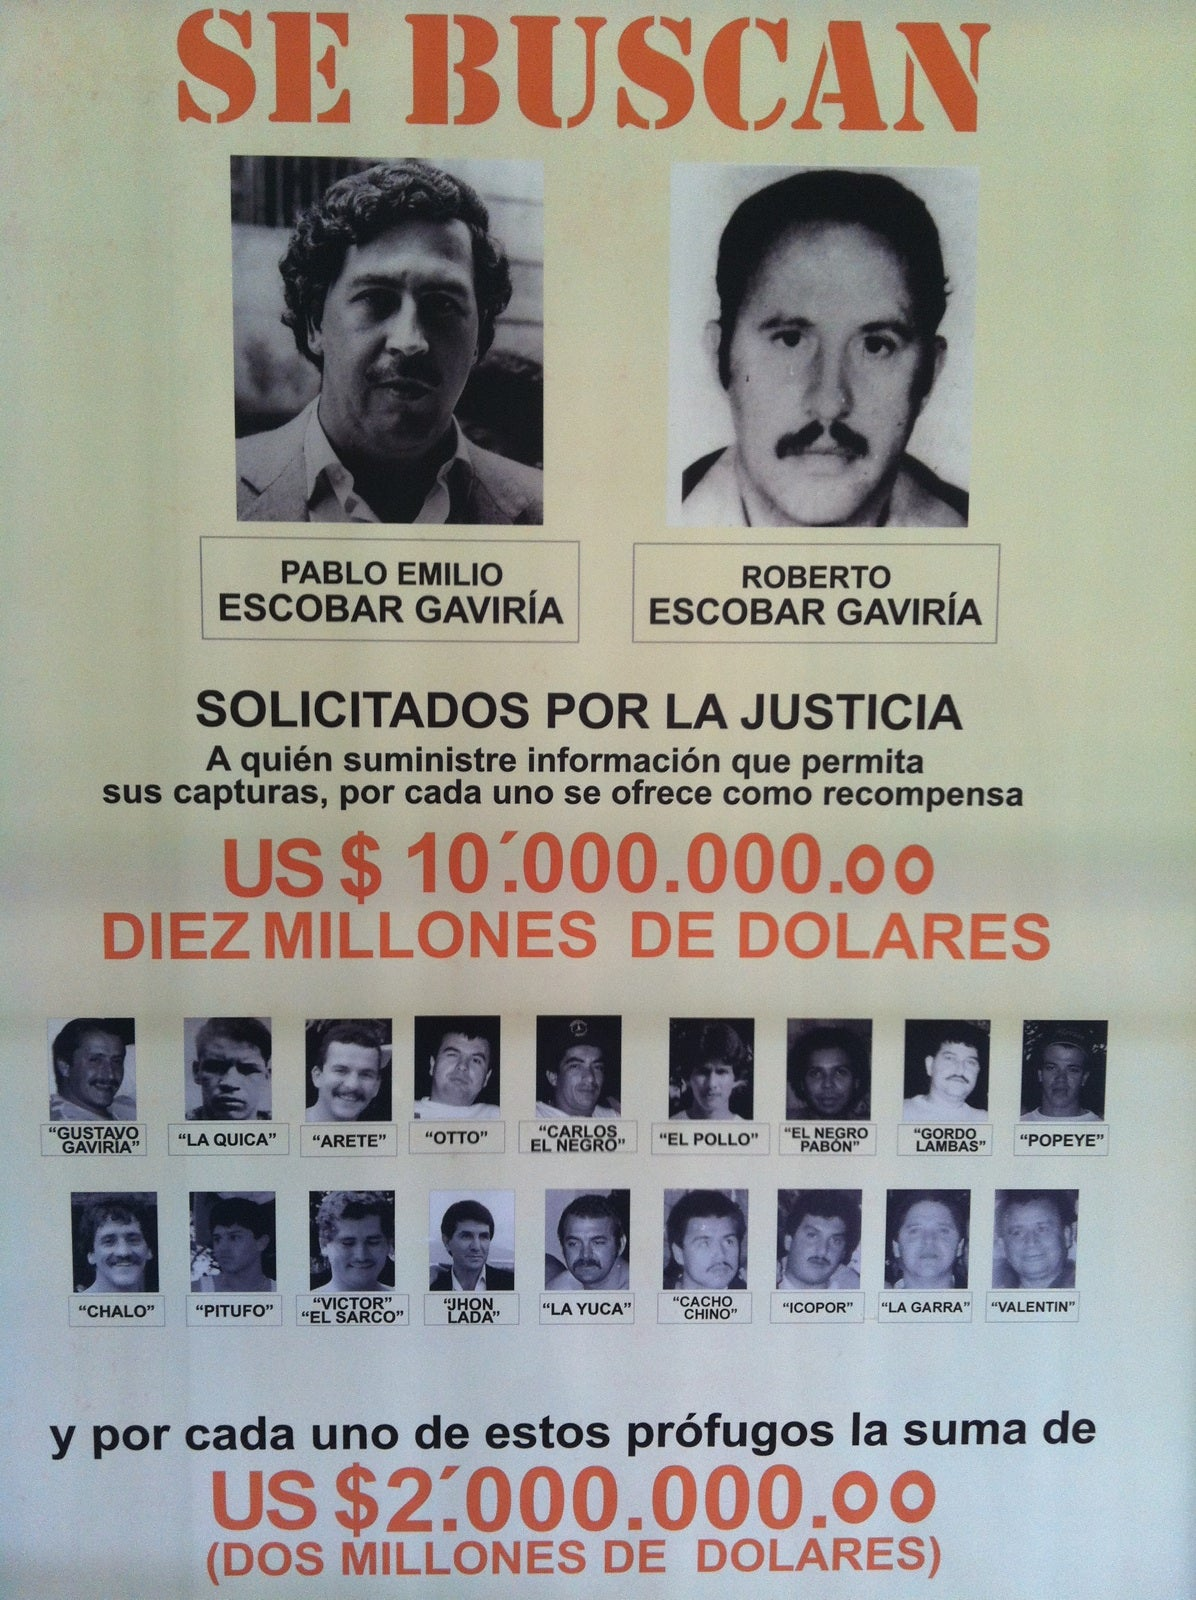 pablo escobar essay example Killing pablo escobar the assignment is due by 04/12/2018 by 11:00 am est the assignment should be approximately one-two pages double-spaced, times new roman 12 font following proper apa writing guidelines.